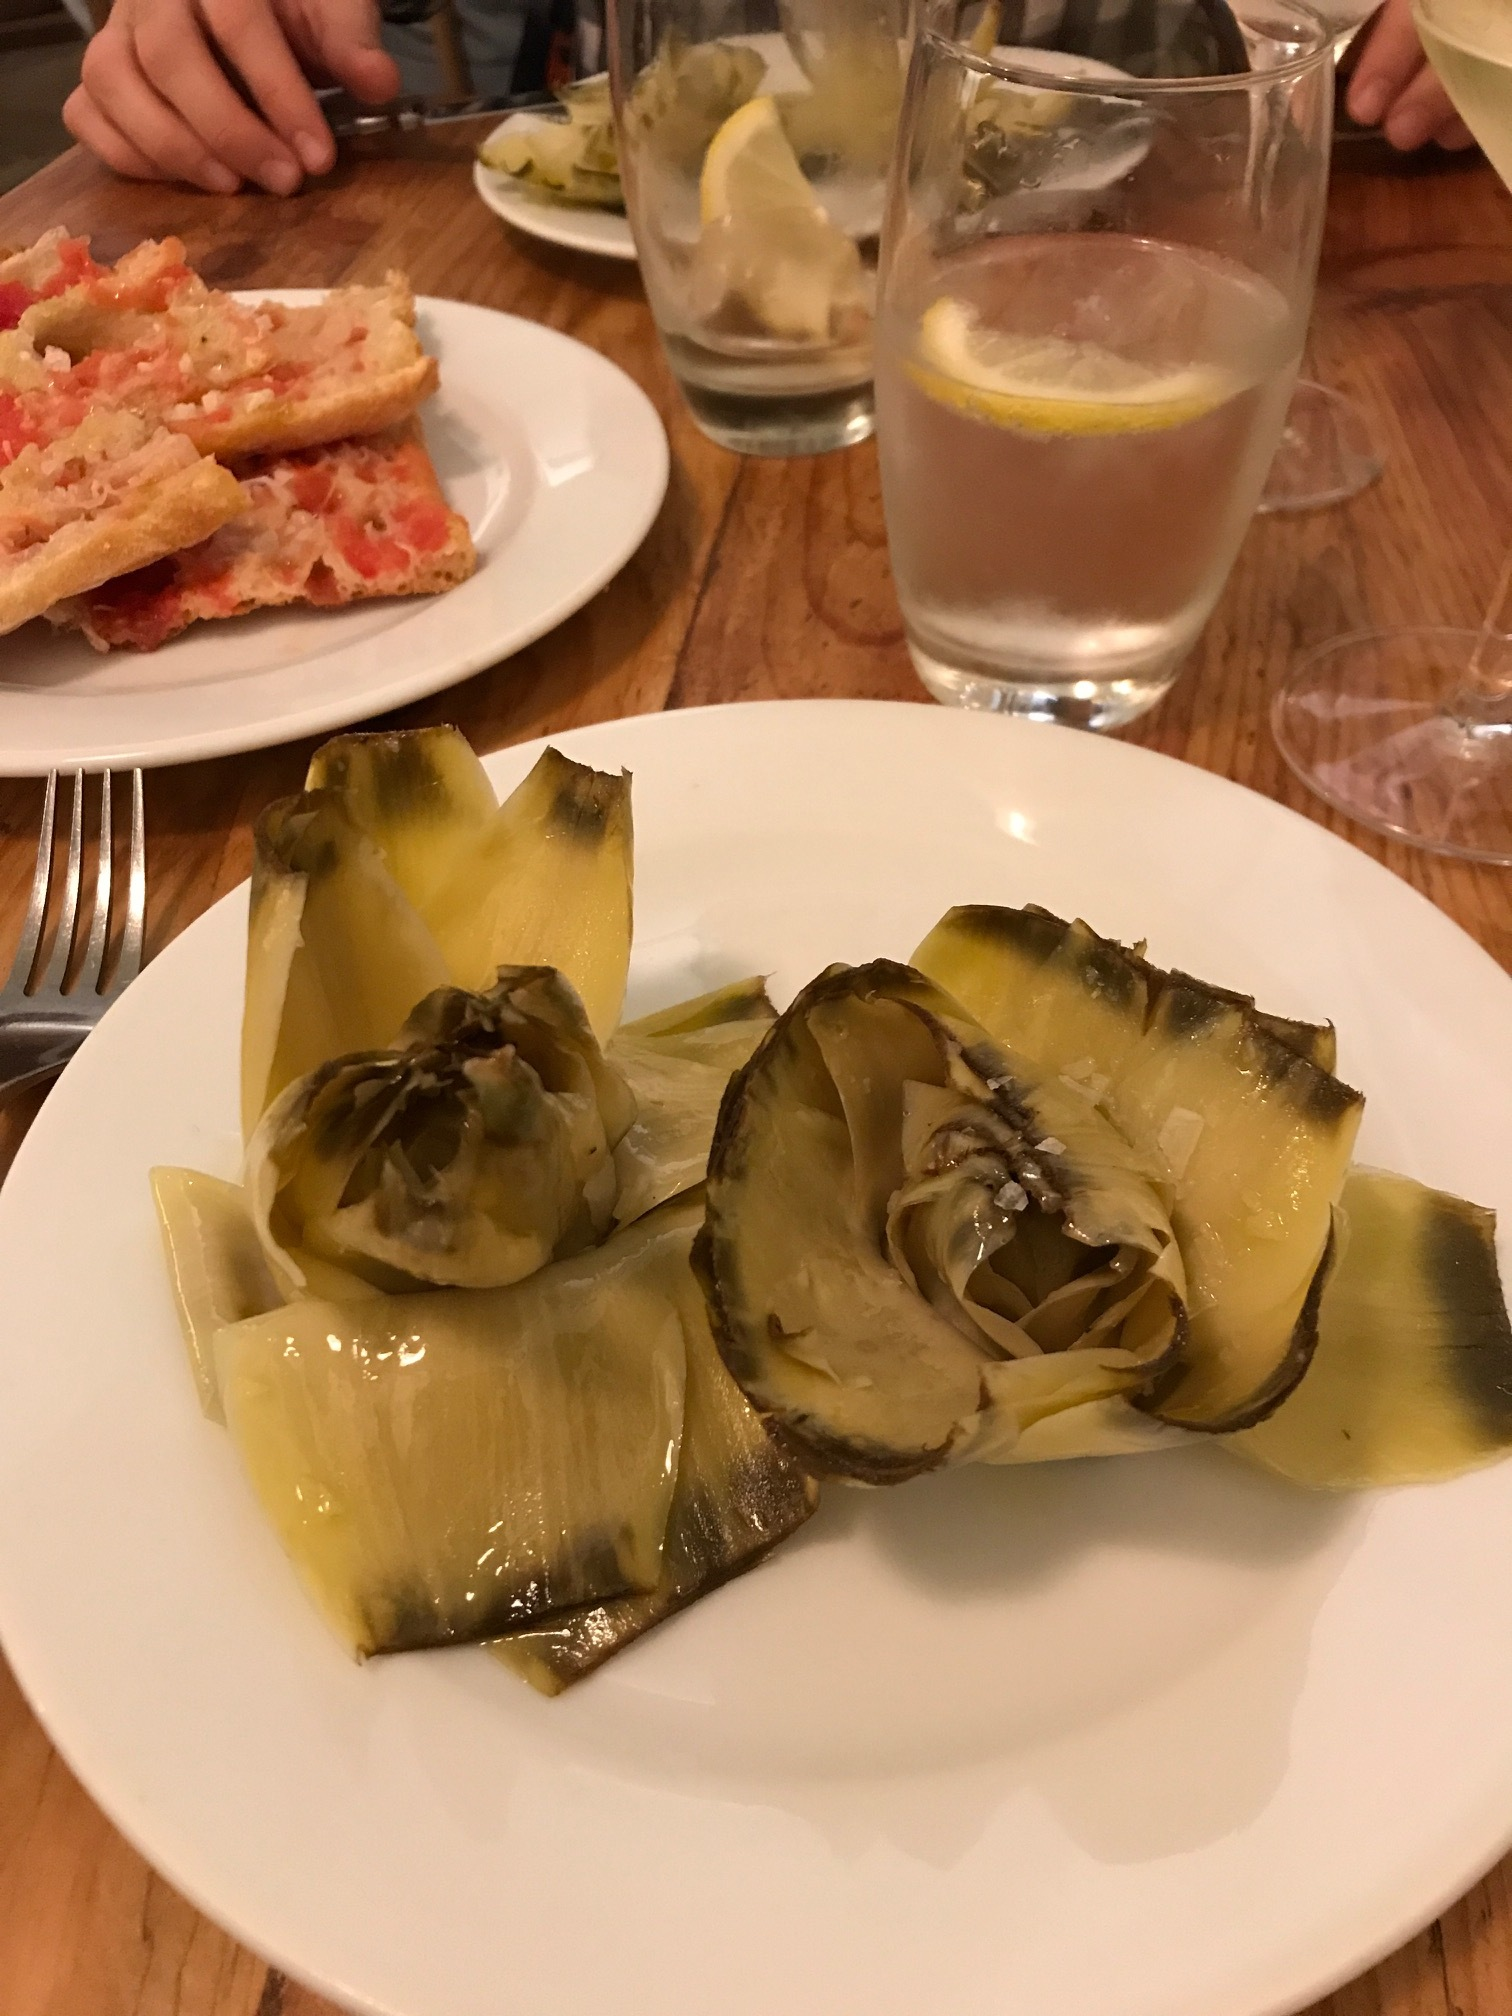 Artichokes and pan con tomate